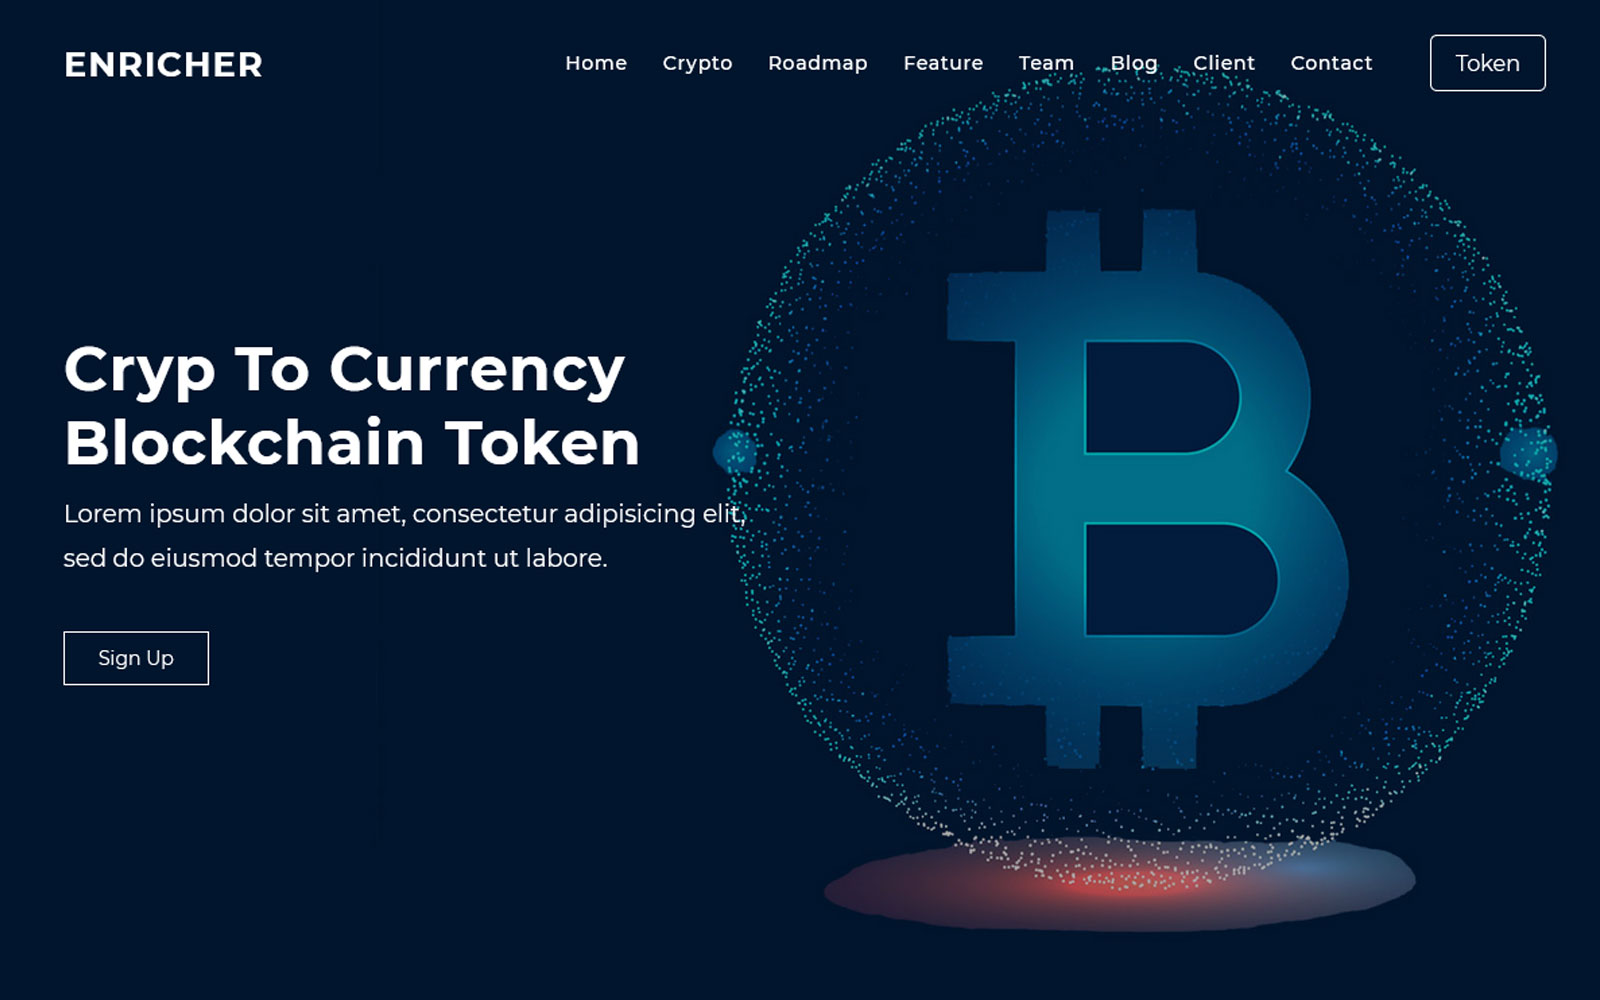 Enricher - ICO Bitcoin & Cryptocurrency Landing Page Theme